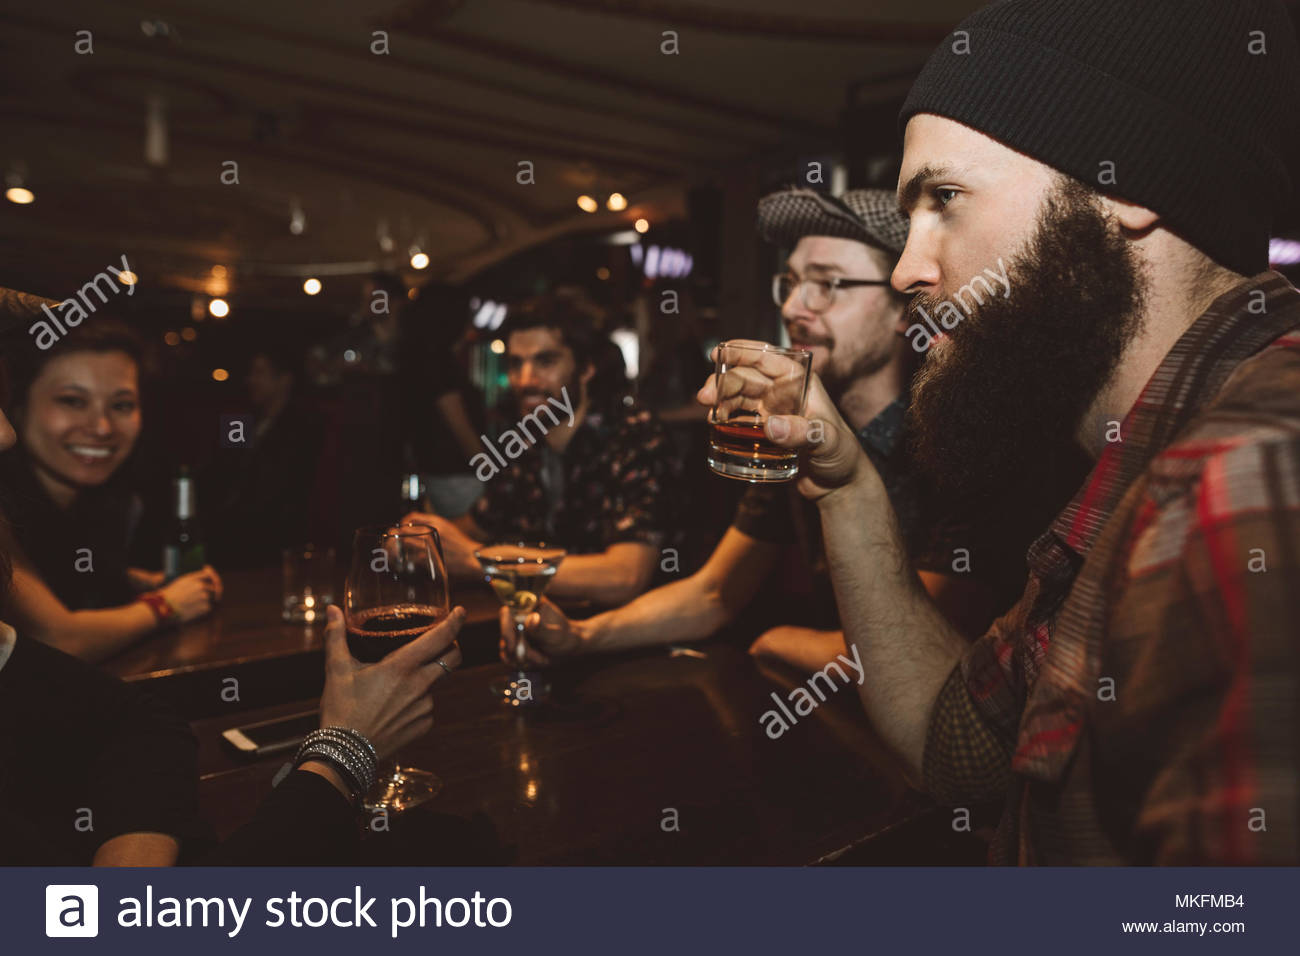 Male millennial hipster drinking whiskey in bar, listening to friends - Stock Image